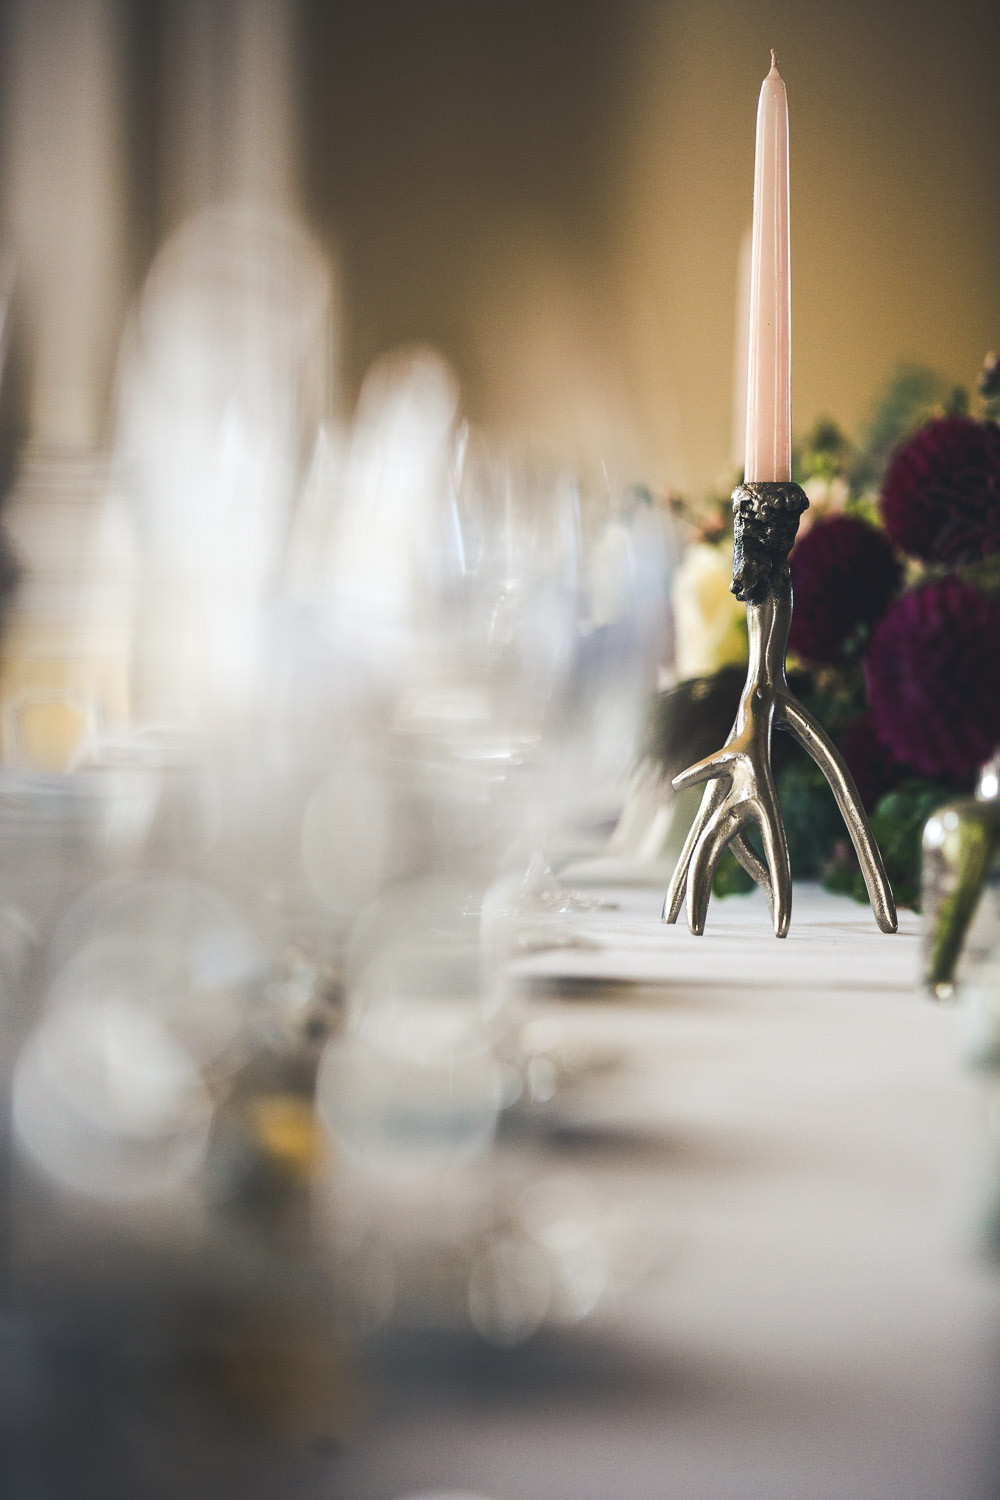 Wedding at the Vajdahunyad Castle in Budapest - table decor